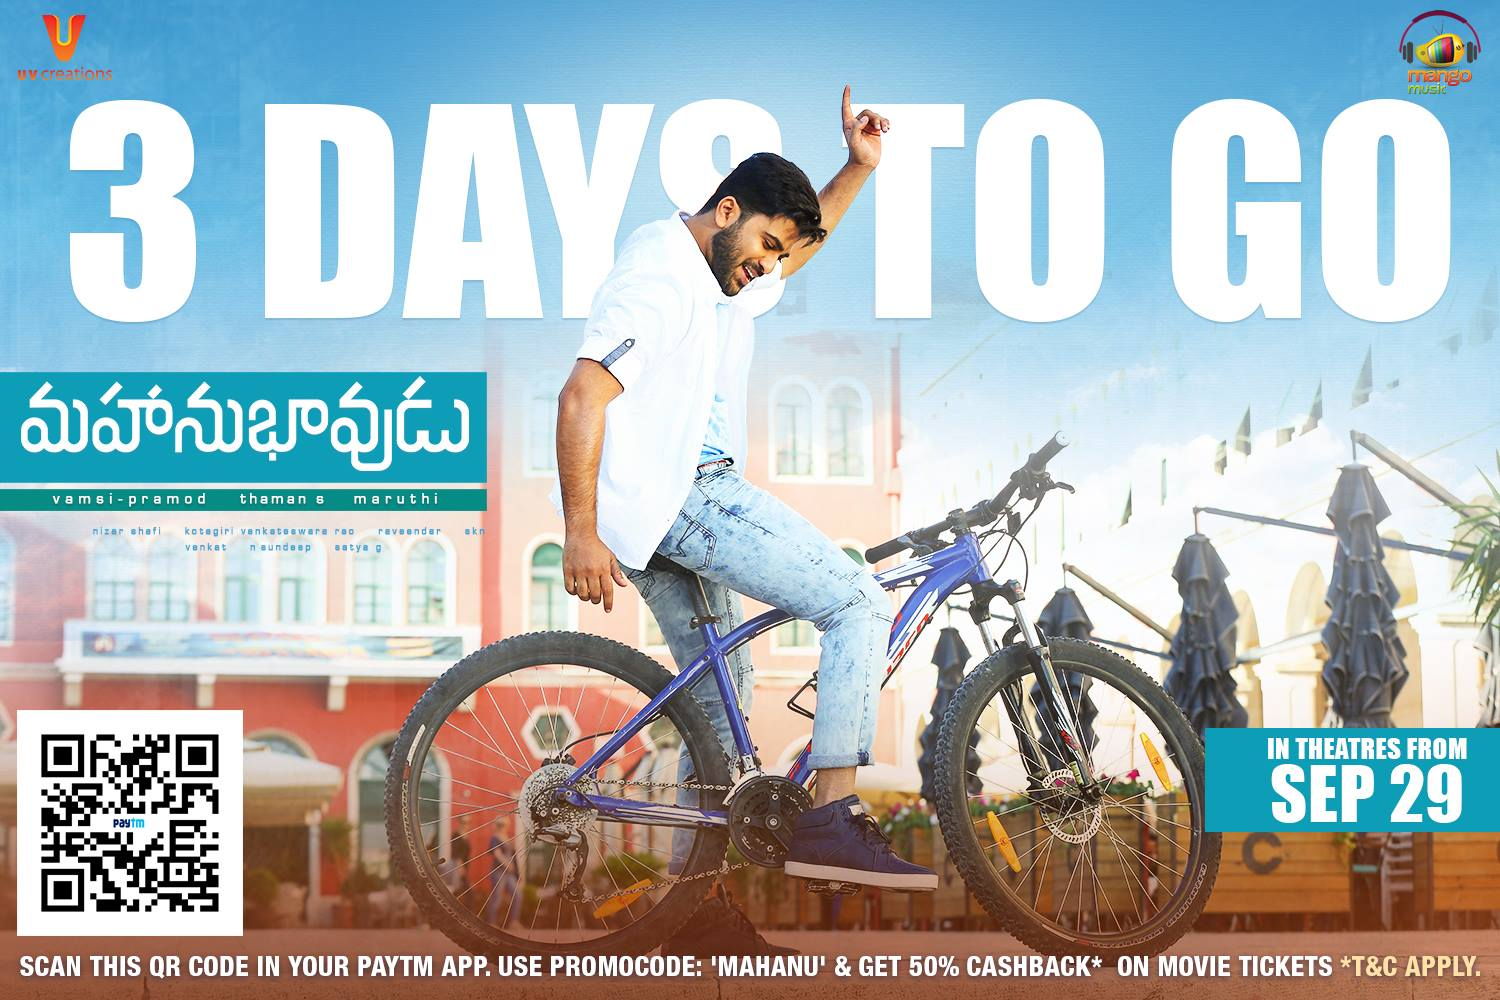 Srimanthudu Ultra Hd All Posters Wallpapers: Sharwanand Mahanubhavudu Movie First Look ULTRA HD Posters